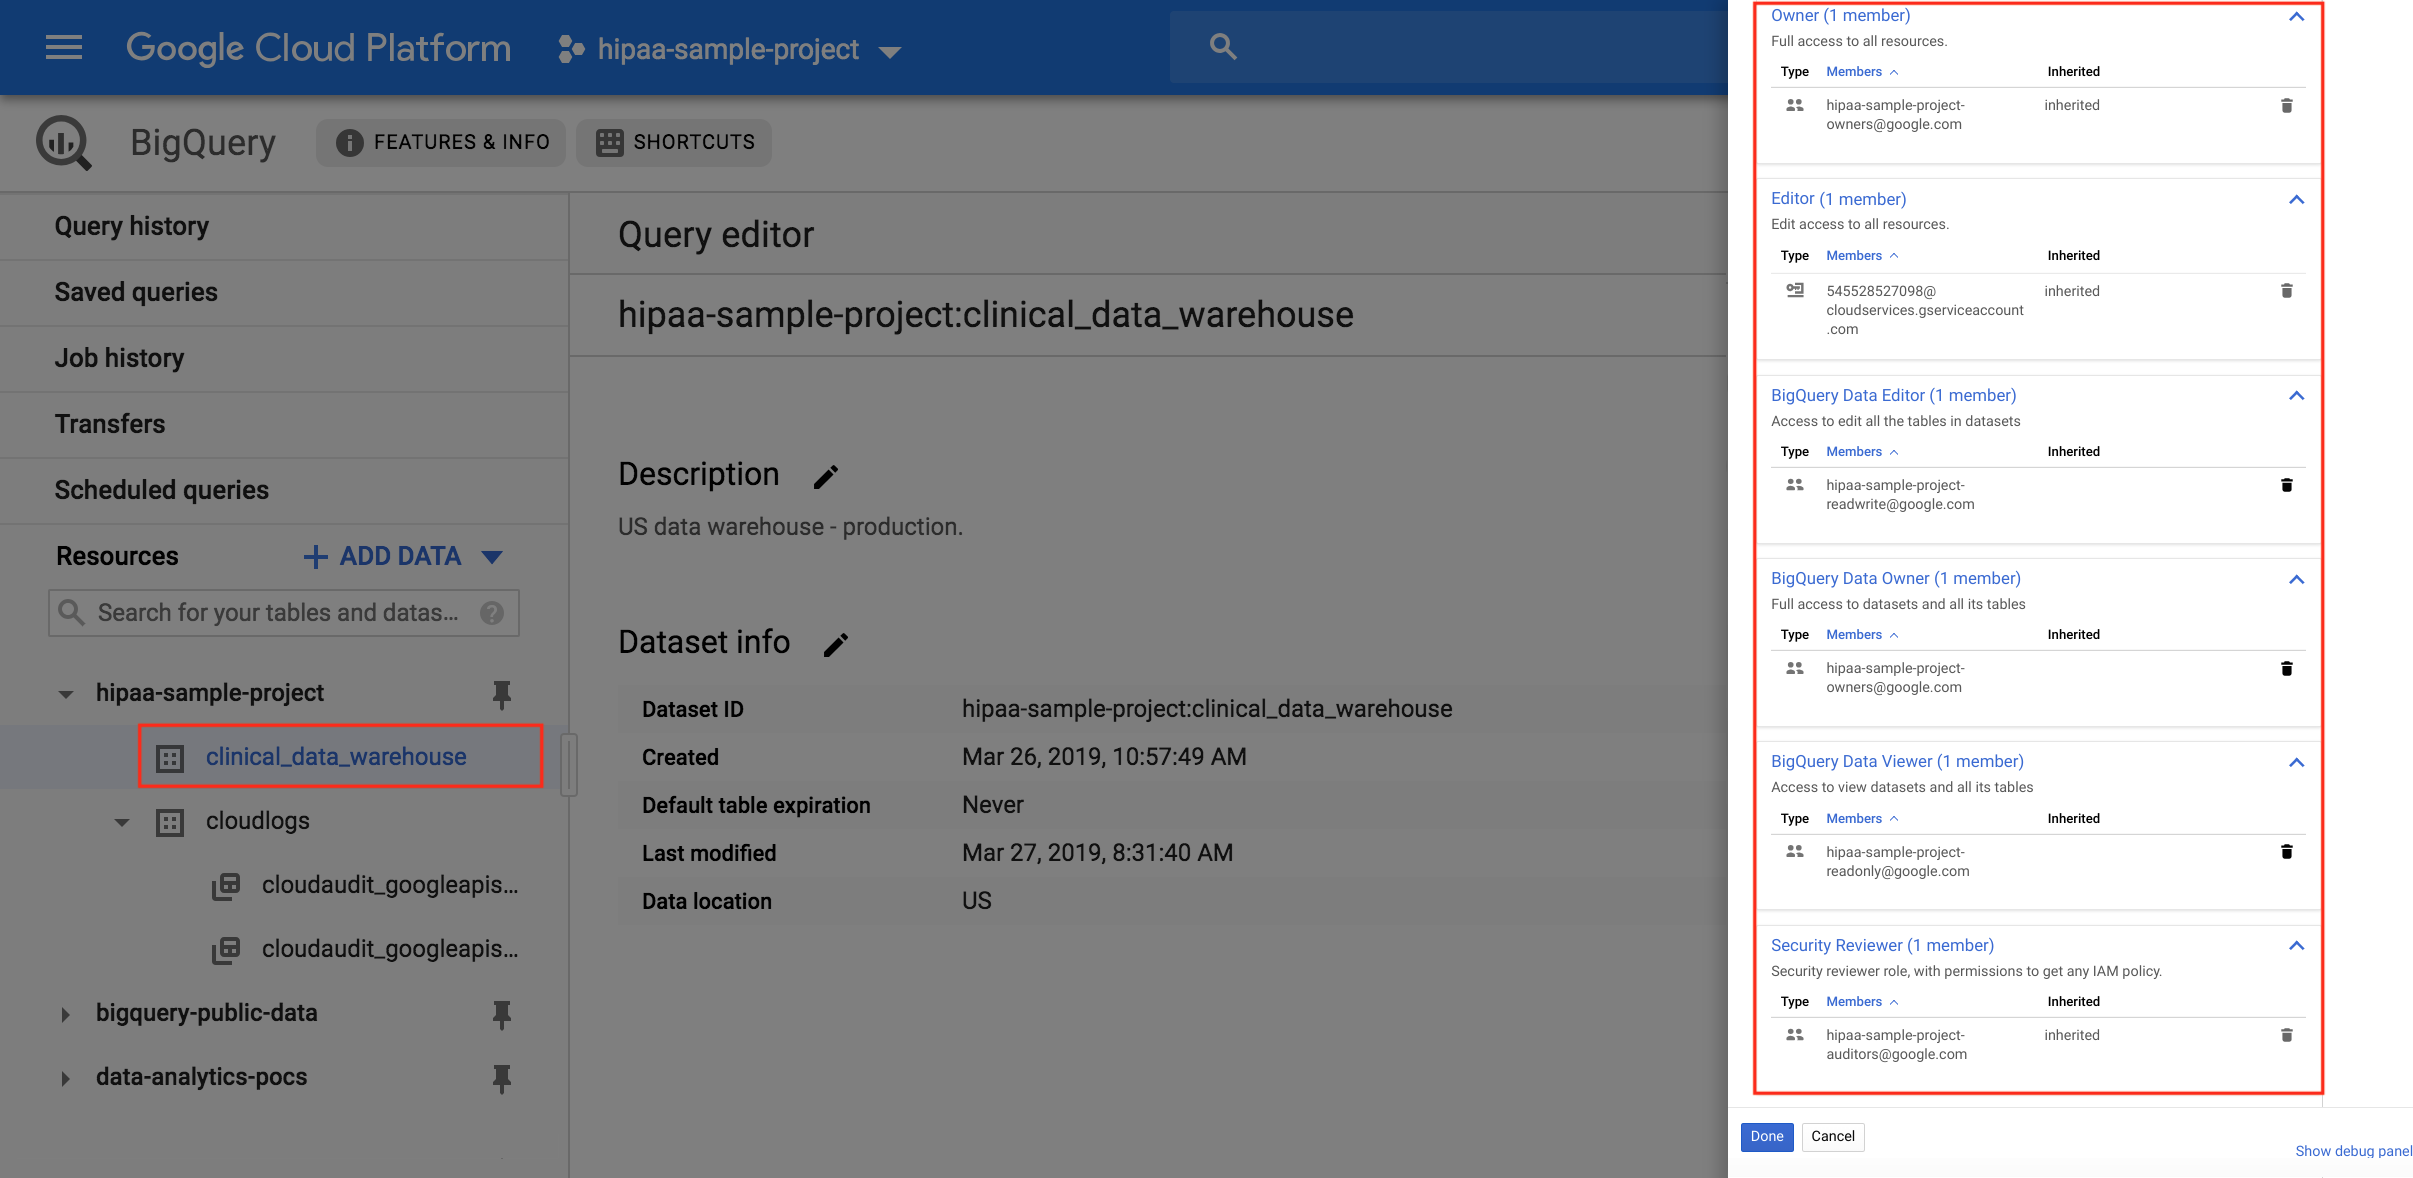 BigQuery data permissions for storing data